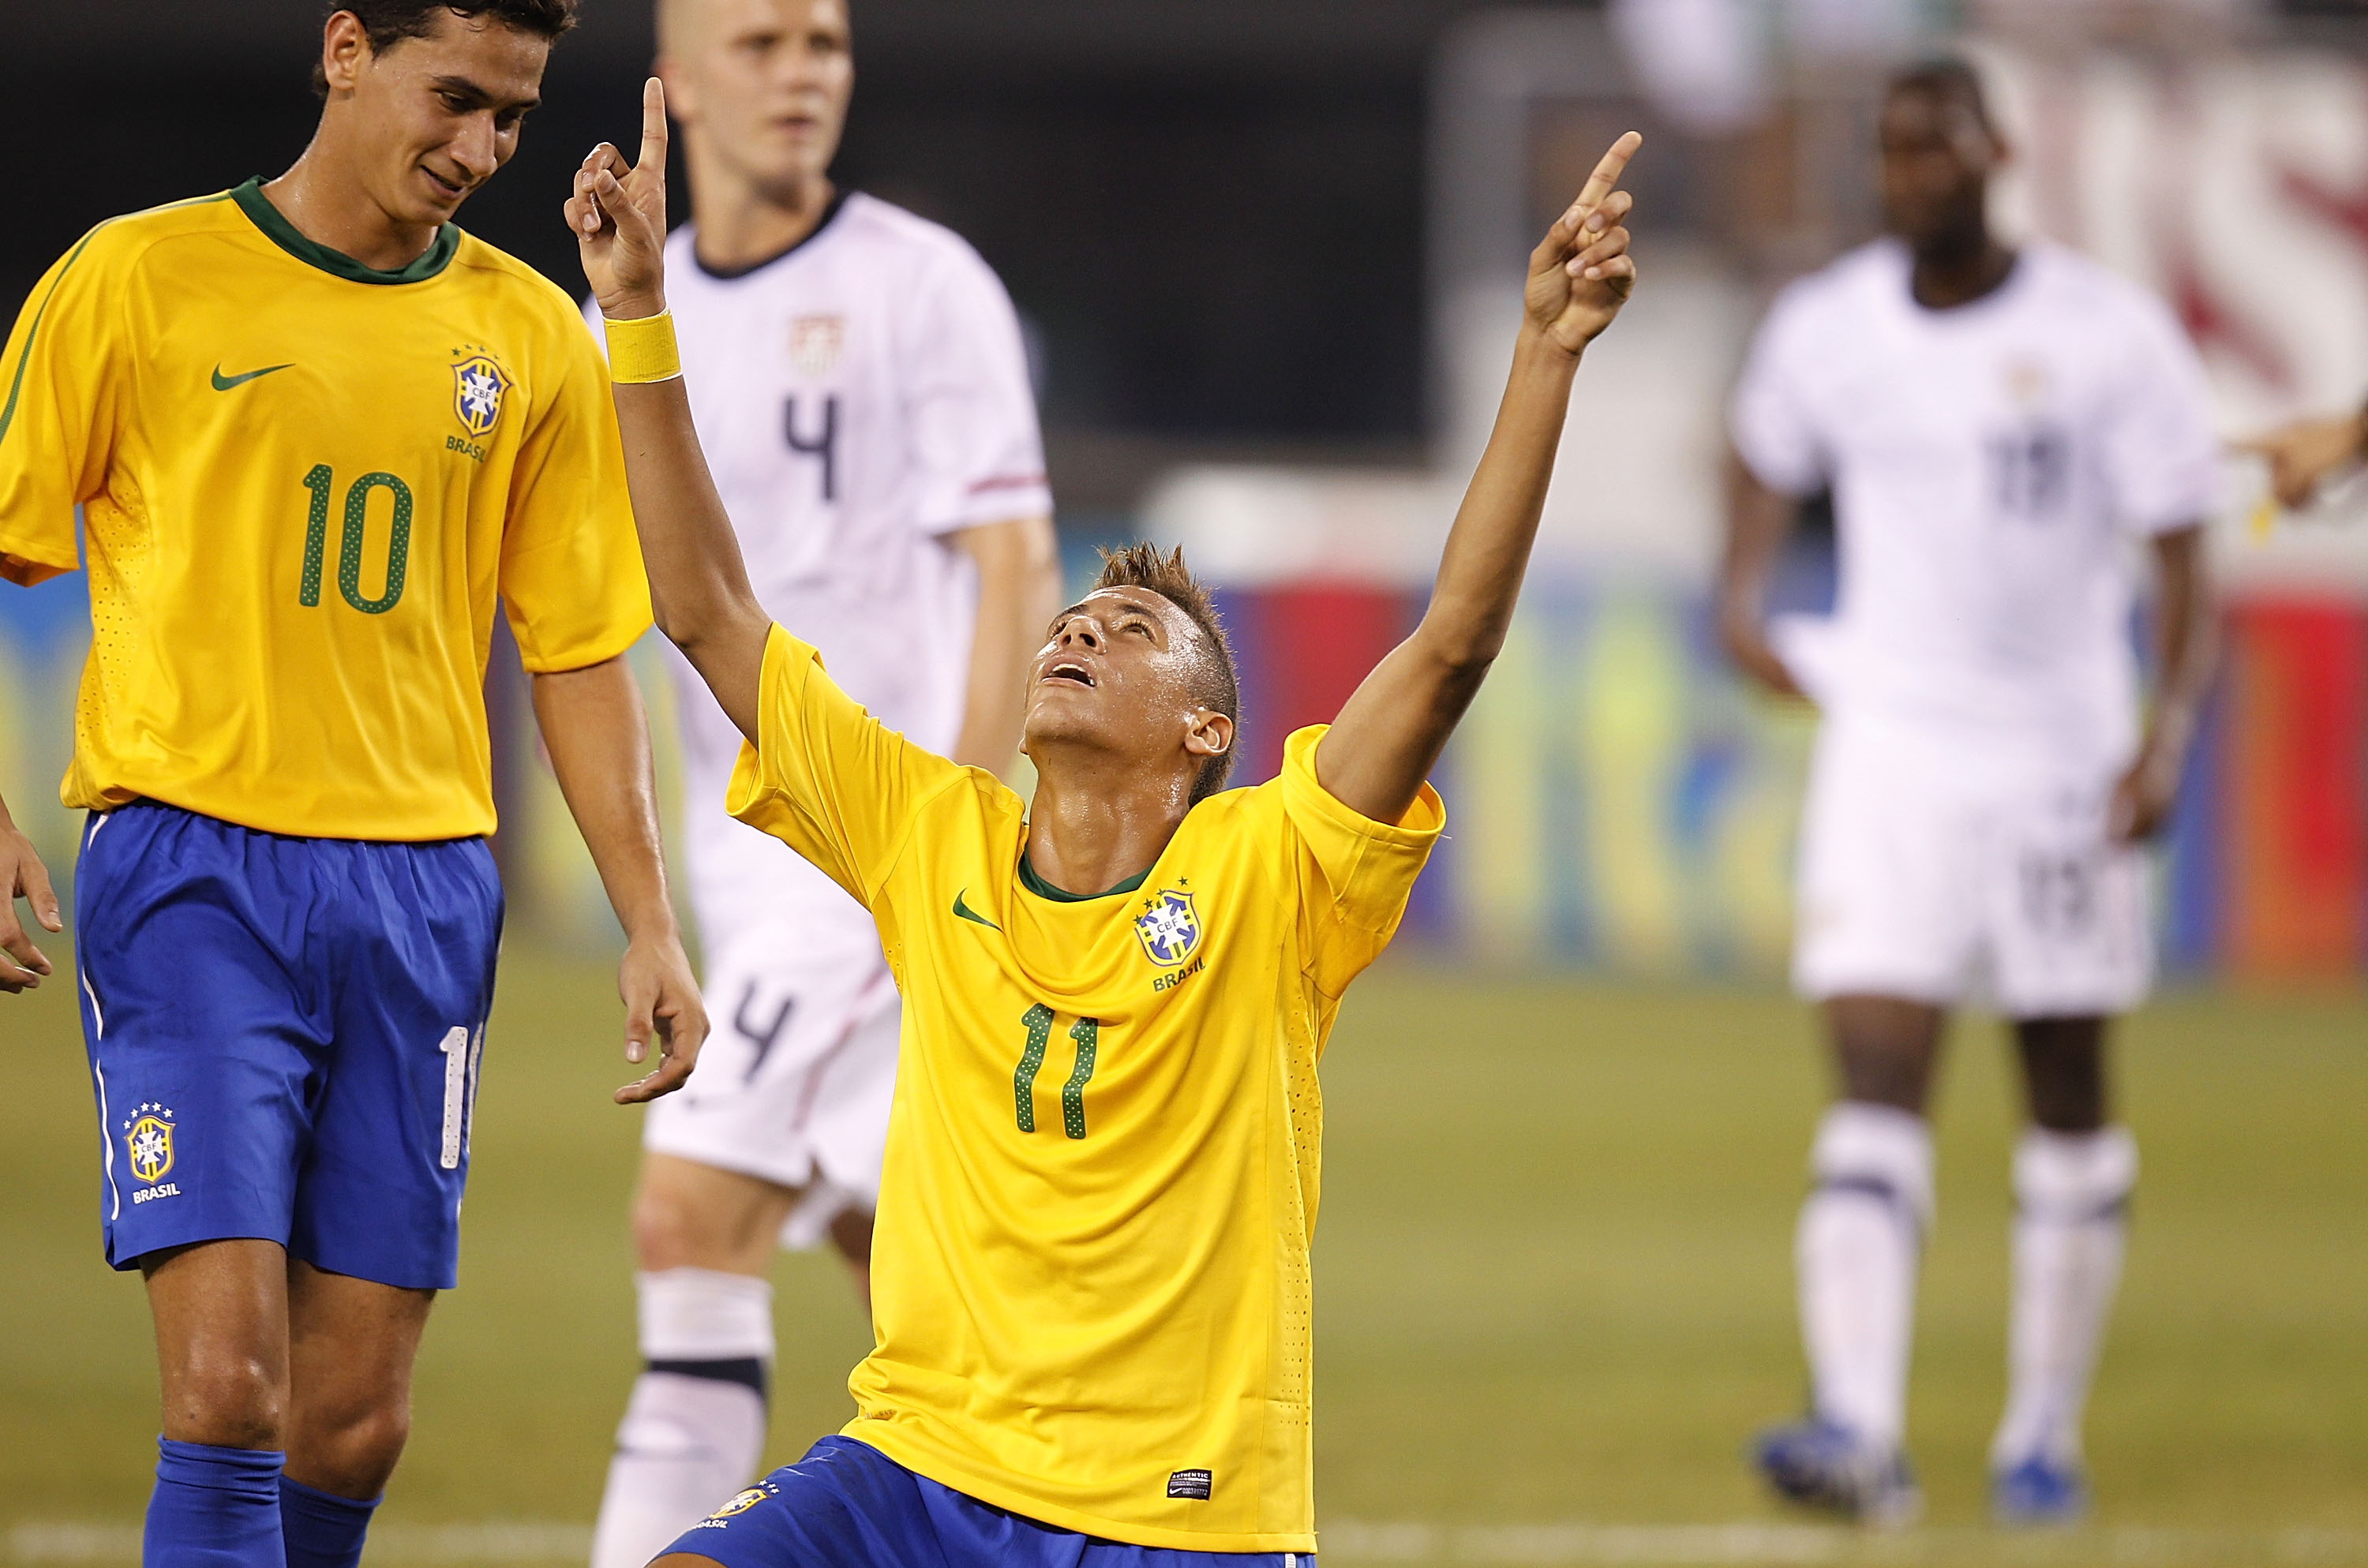 Neymar, Firmino on target as Brazil cruise over USA